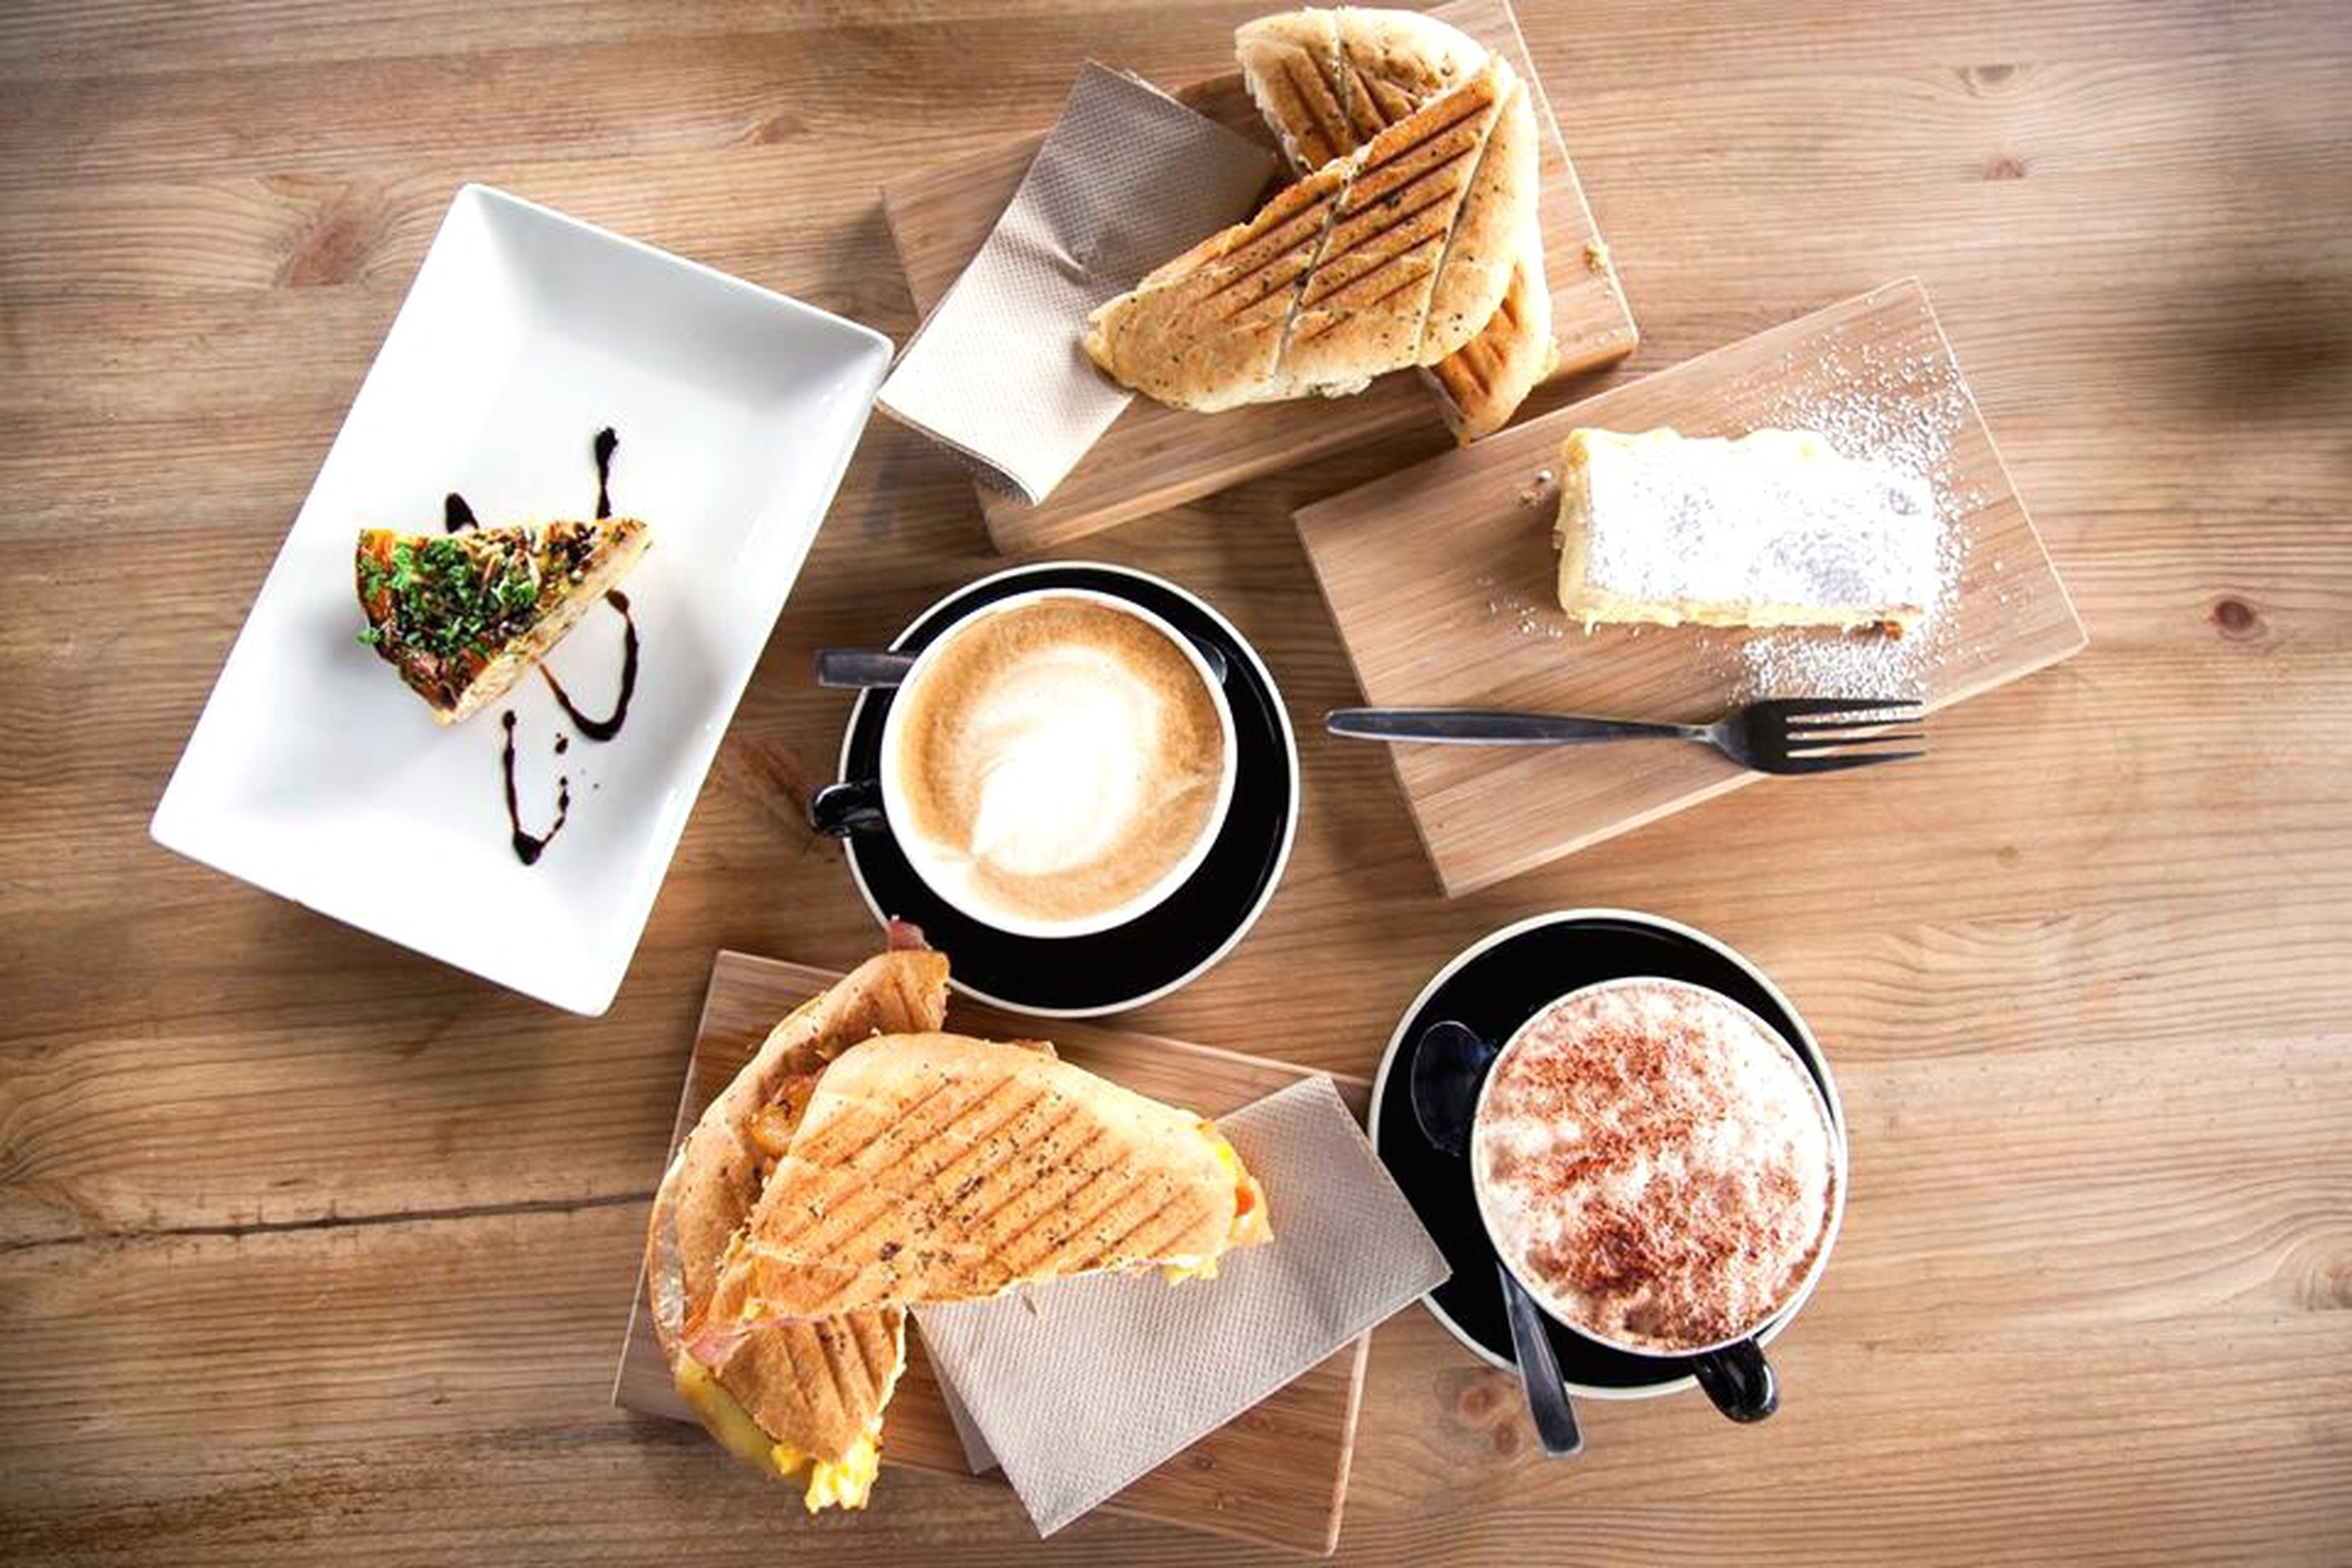 food and drink, table, food, freshness, indoors, plate, still life, ready-to-eat, drink, healthy eating, high angle view, directly above, wood - material, meal, breakfast, serving size, fork, refreshment, bread, spoon